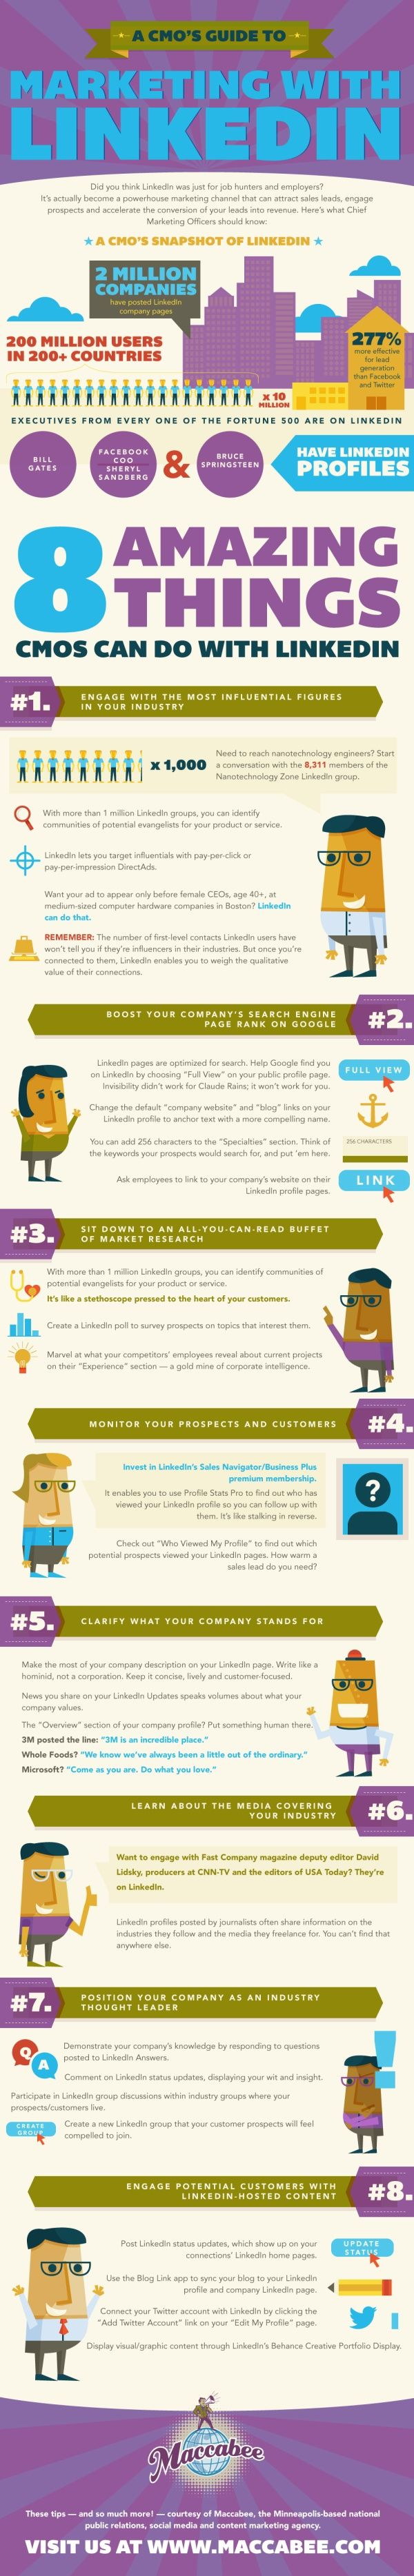 Top tips for #marketing on #LinkedIn - great tips from this #infographic! http://infographicb2b.com/2013/04/16/a-guide-to-marketing-with-linkedin-infographic/?utm_source=twitter&utm_medium=evergreen_post_tweeter&utm_campaign=website